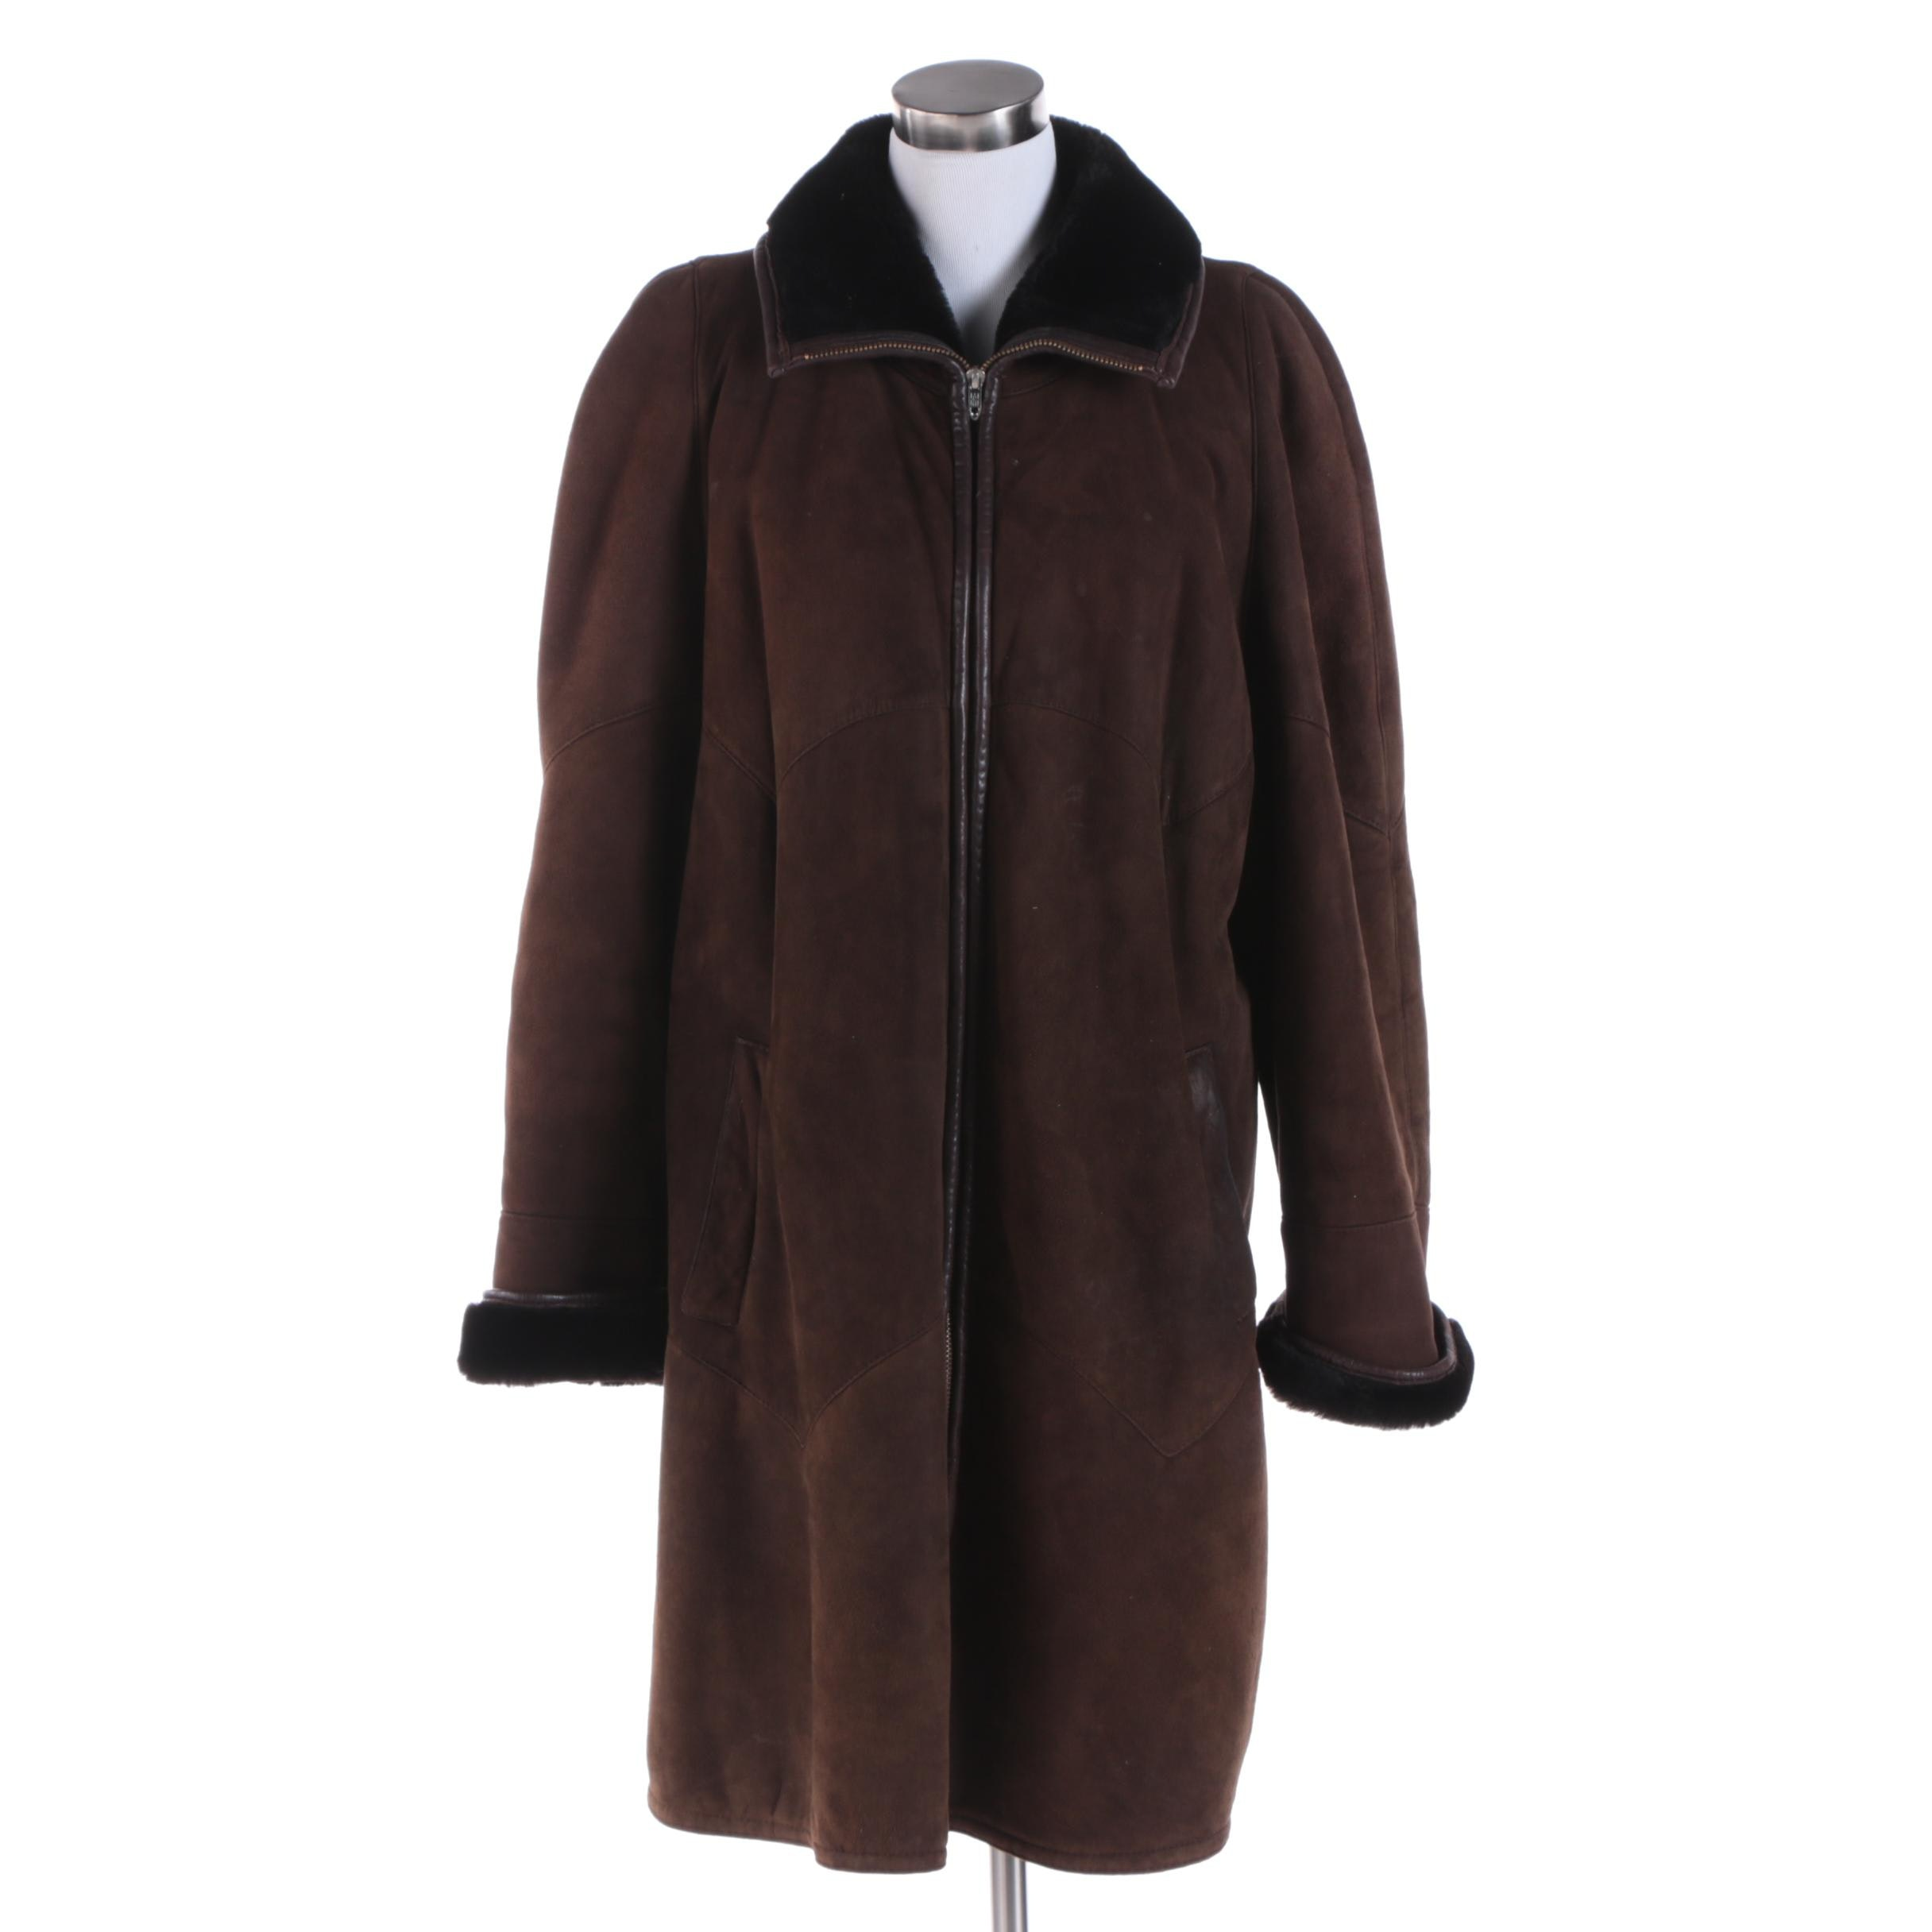 Vintage Shearlings by Delino Sheepskin Brown Suede Coat with Shearling Lining